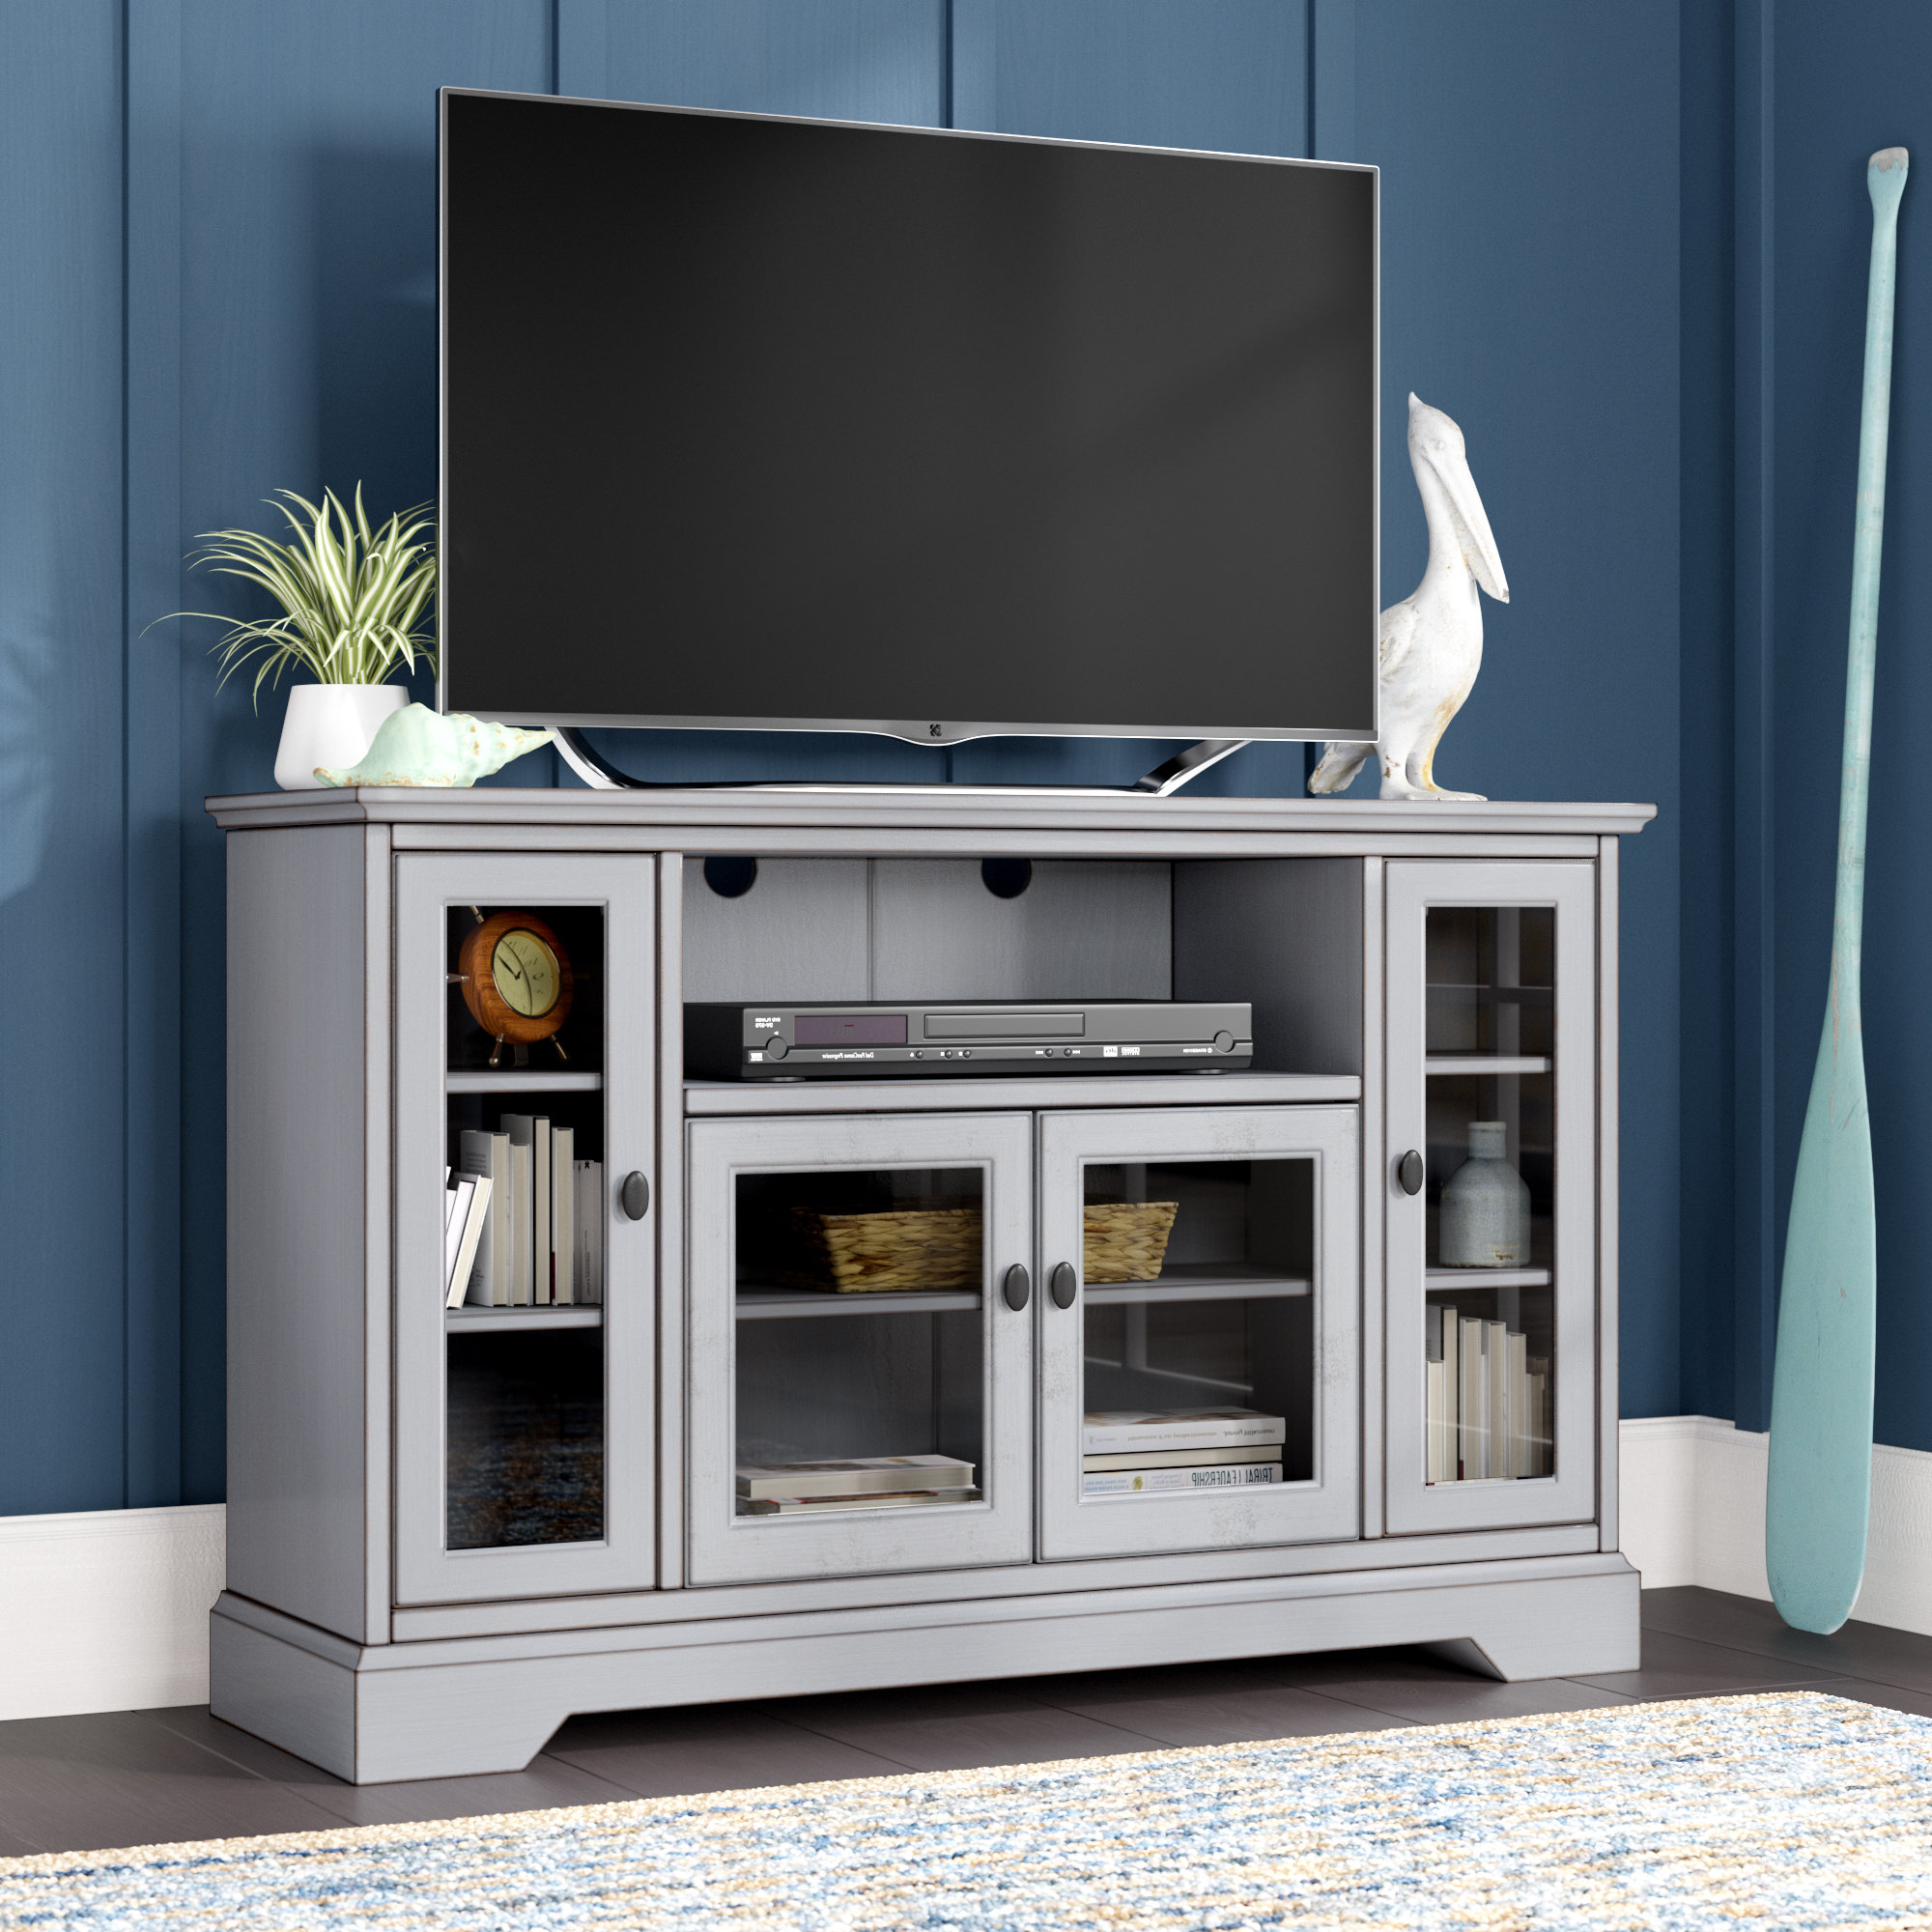 Tall Tv Stands You'll Love | Wayfair For Canyon 54 Inch Tv Stands (View 8 of 20)